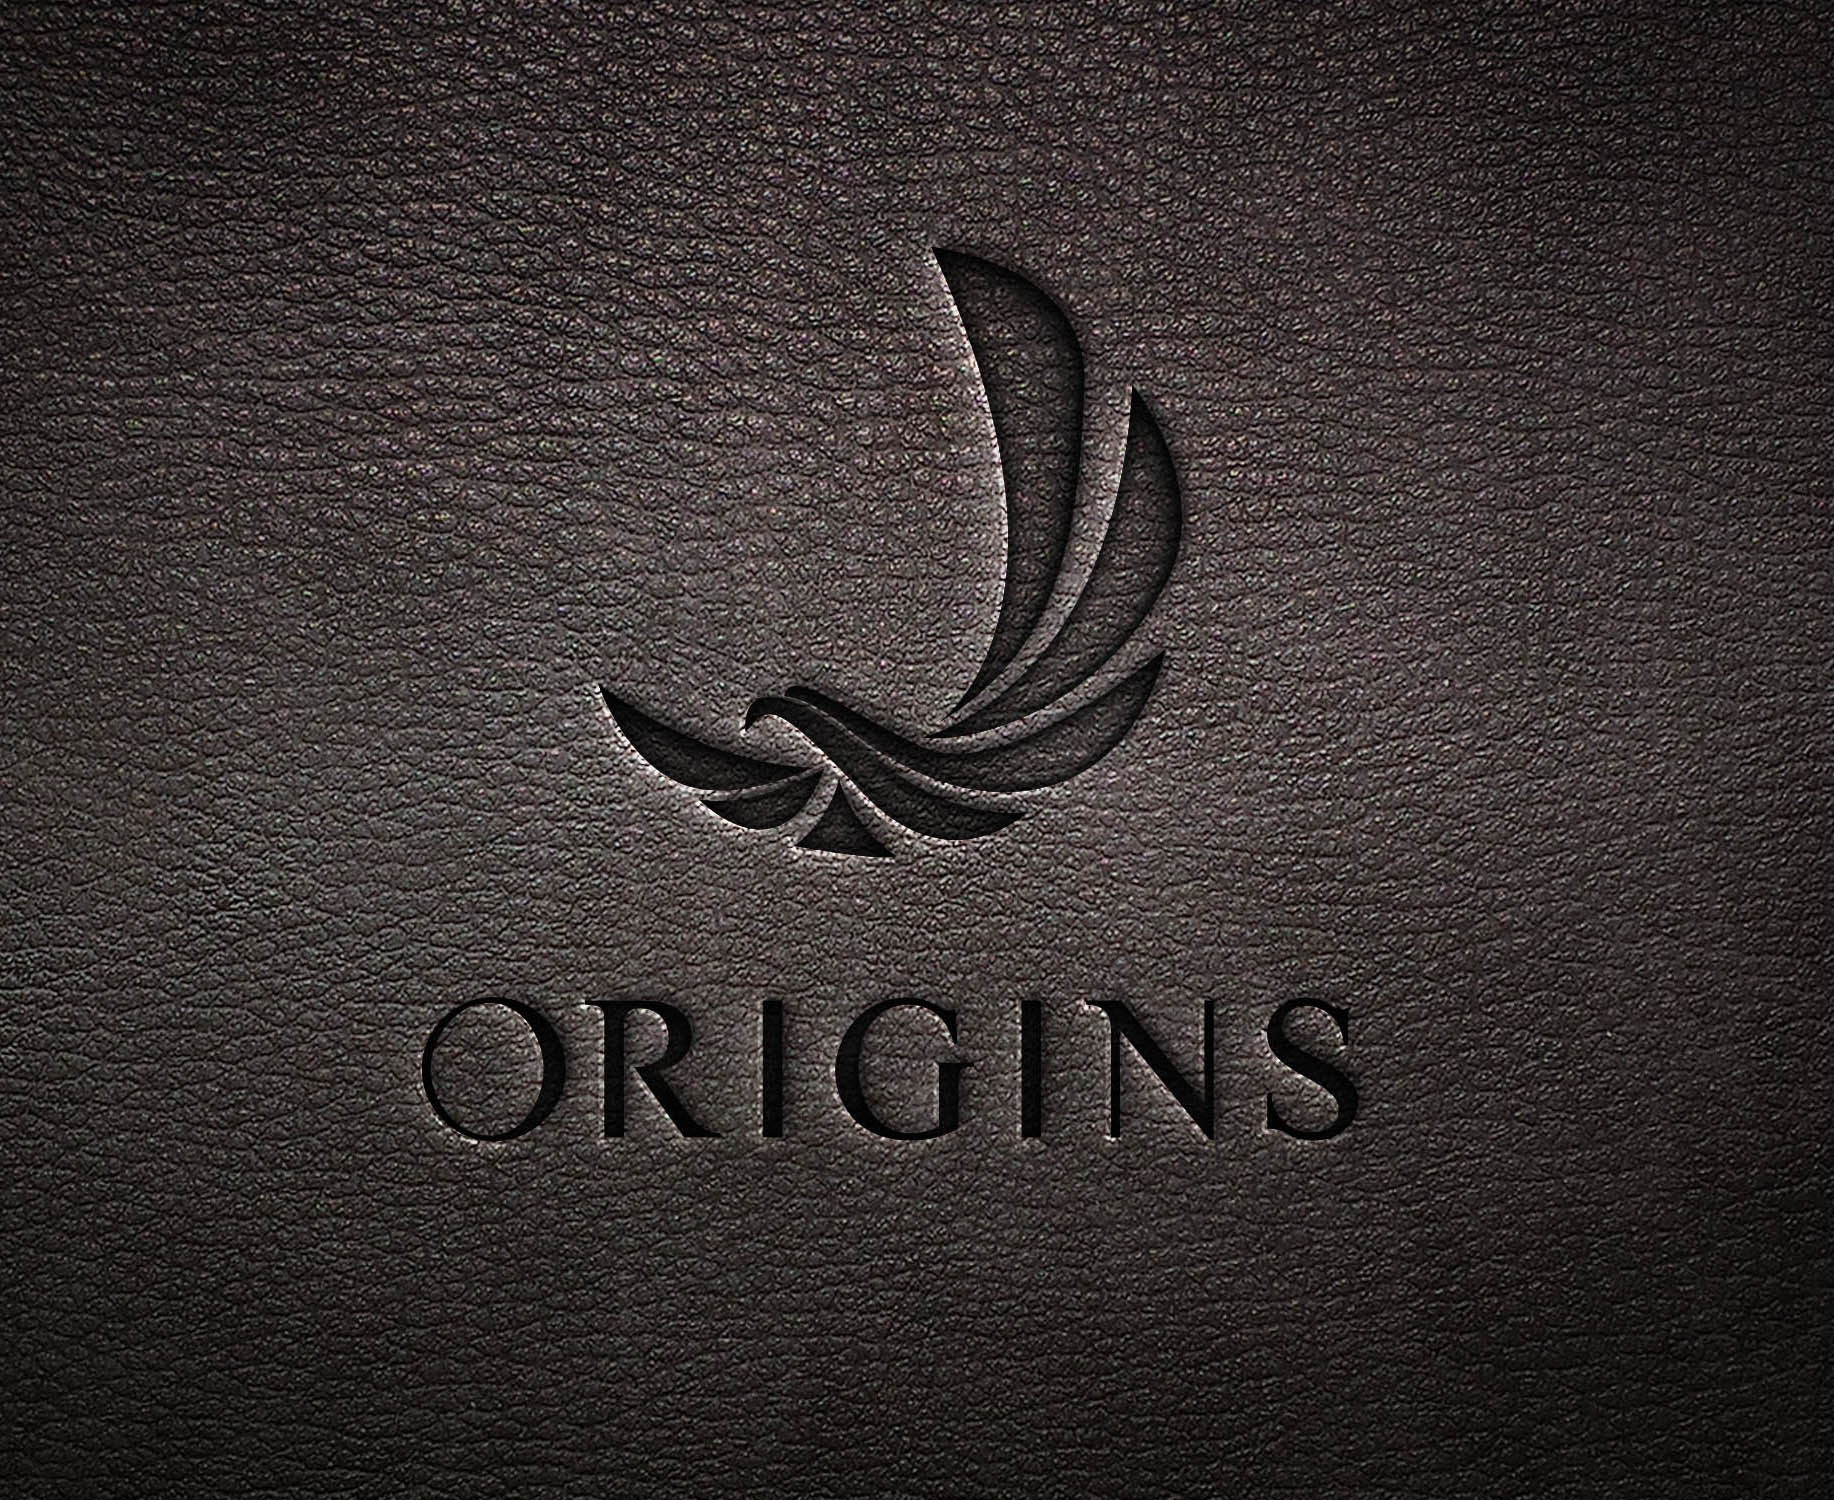 Leather Company Logo (embossed onto leather) BLIND + Guaranteed Money